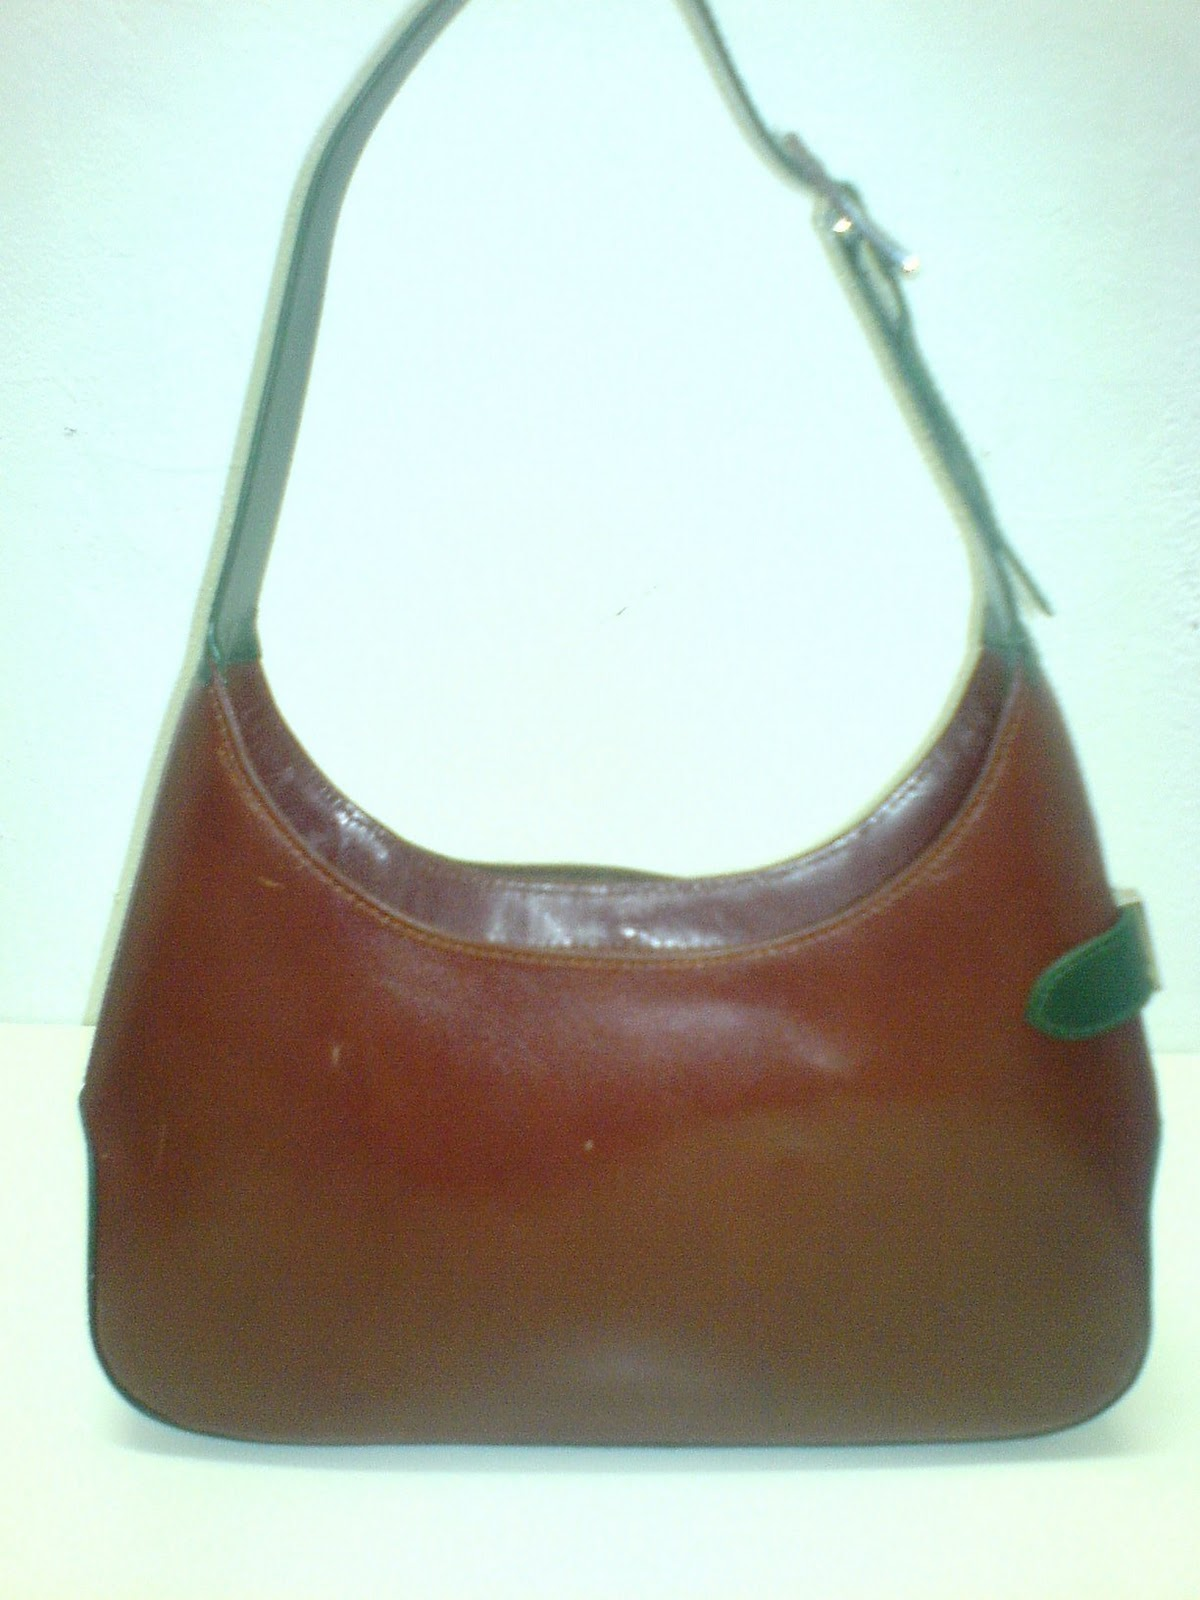 THE BAGBLOGSHOP.: VINTAGE SALVATORE FERRAGAMO HANDBAG ( SOLD )